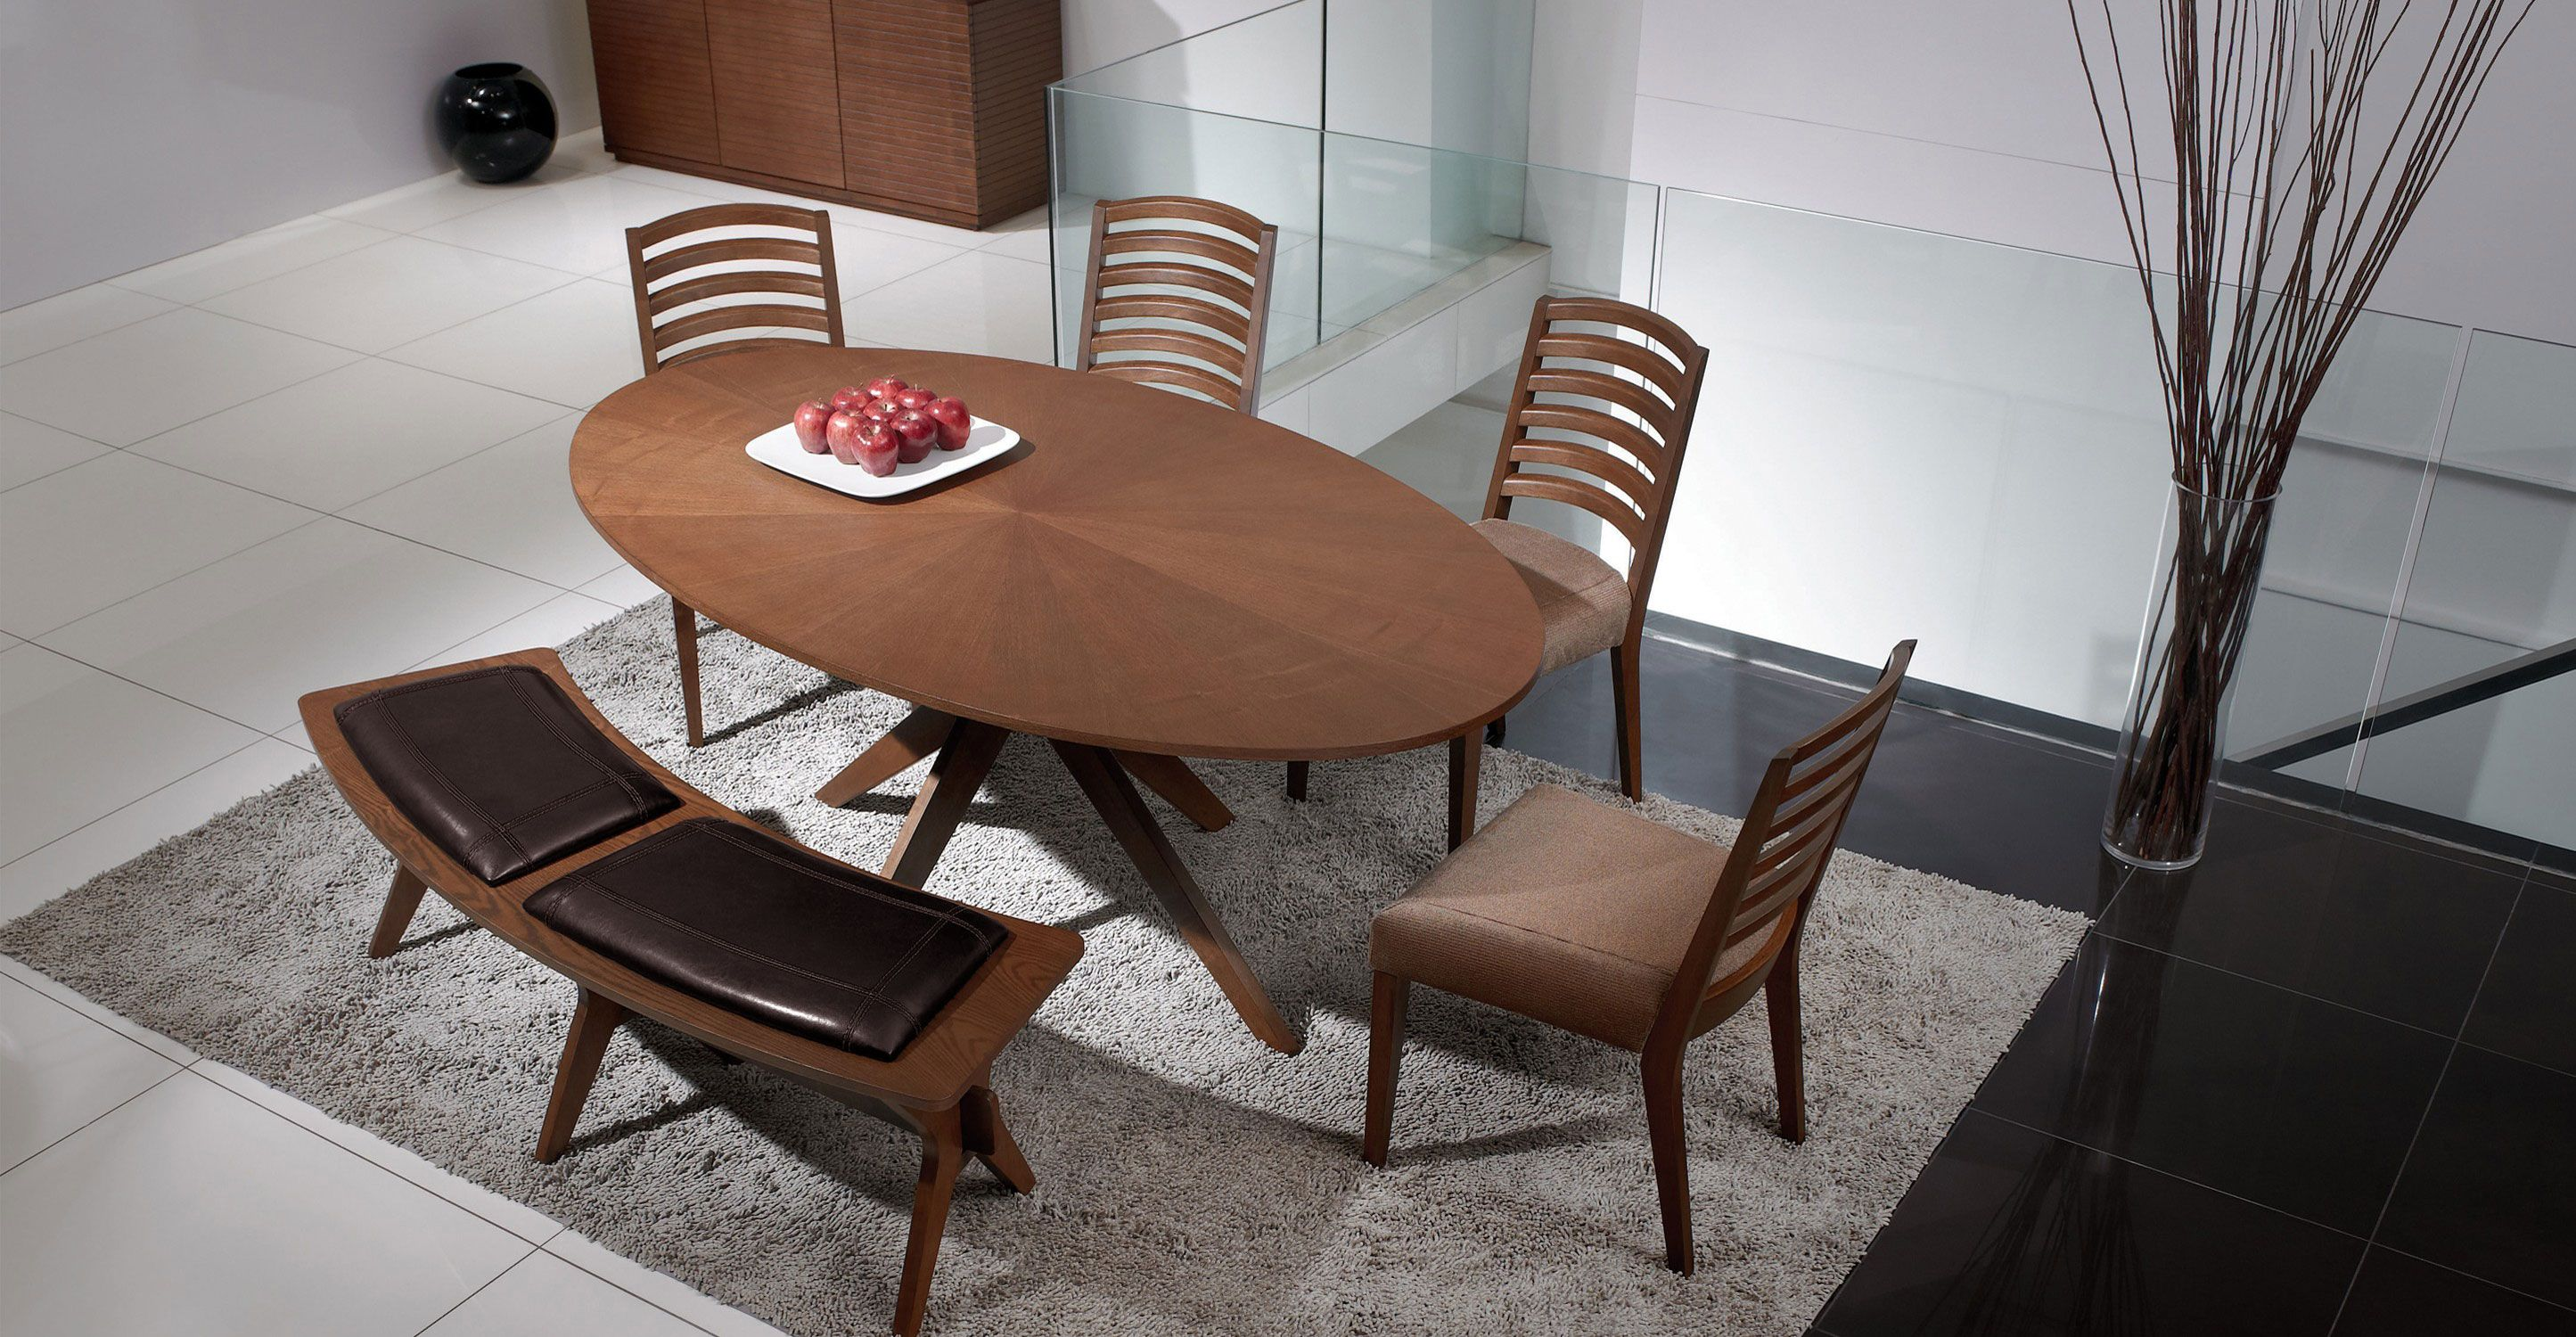 Conan Oval Dining Table With Images Oval Table Dining Modern